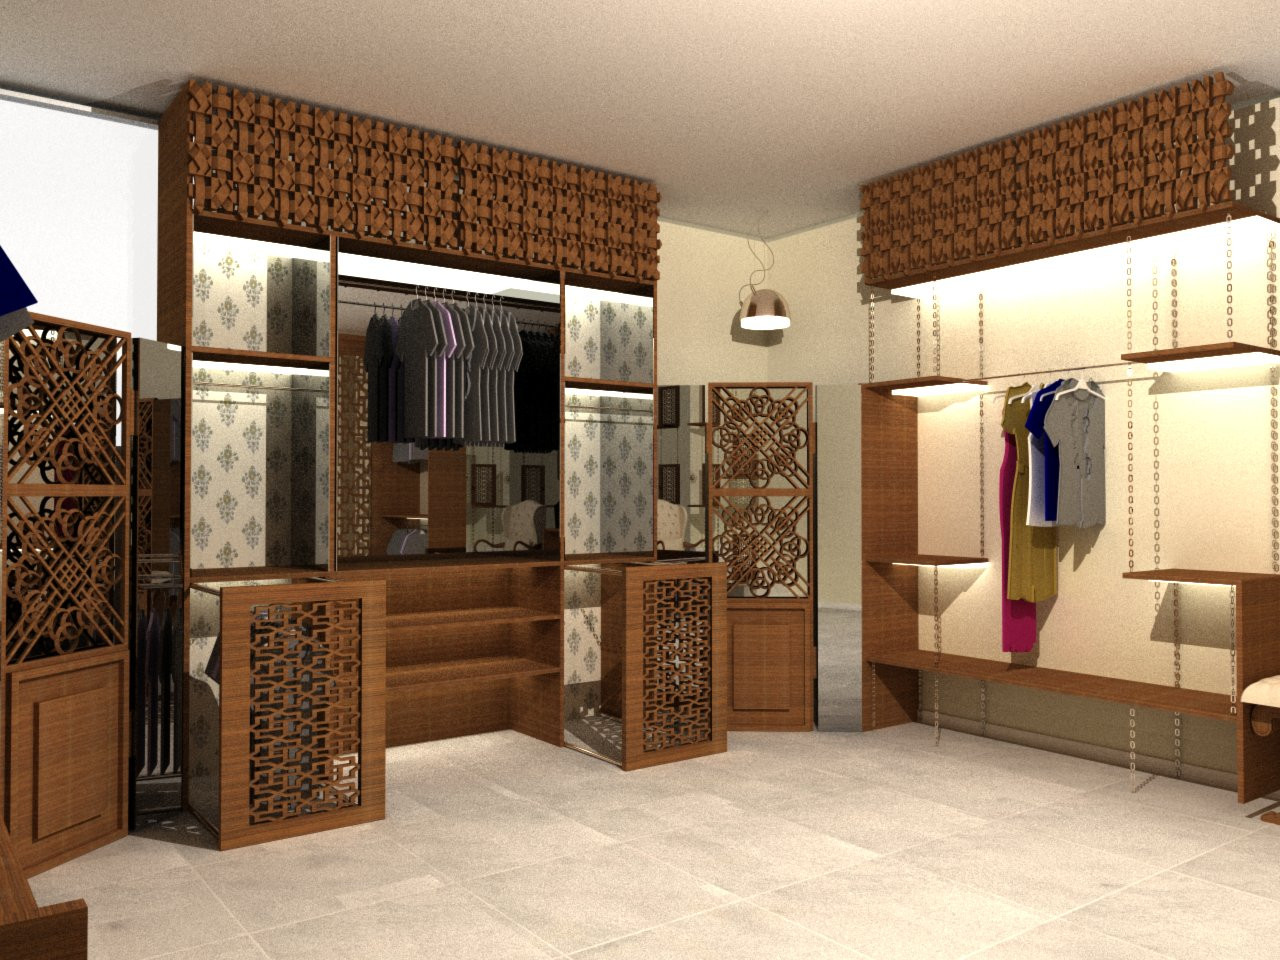 Wardrobe dislay with wood carving